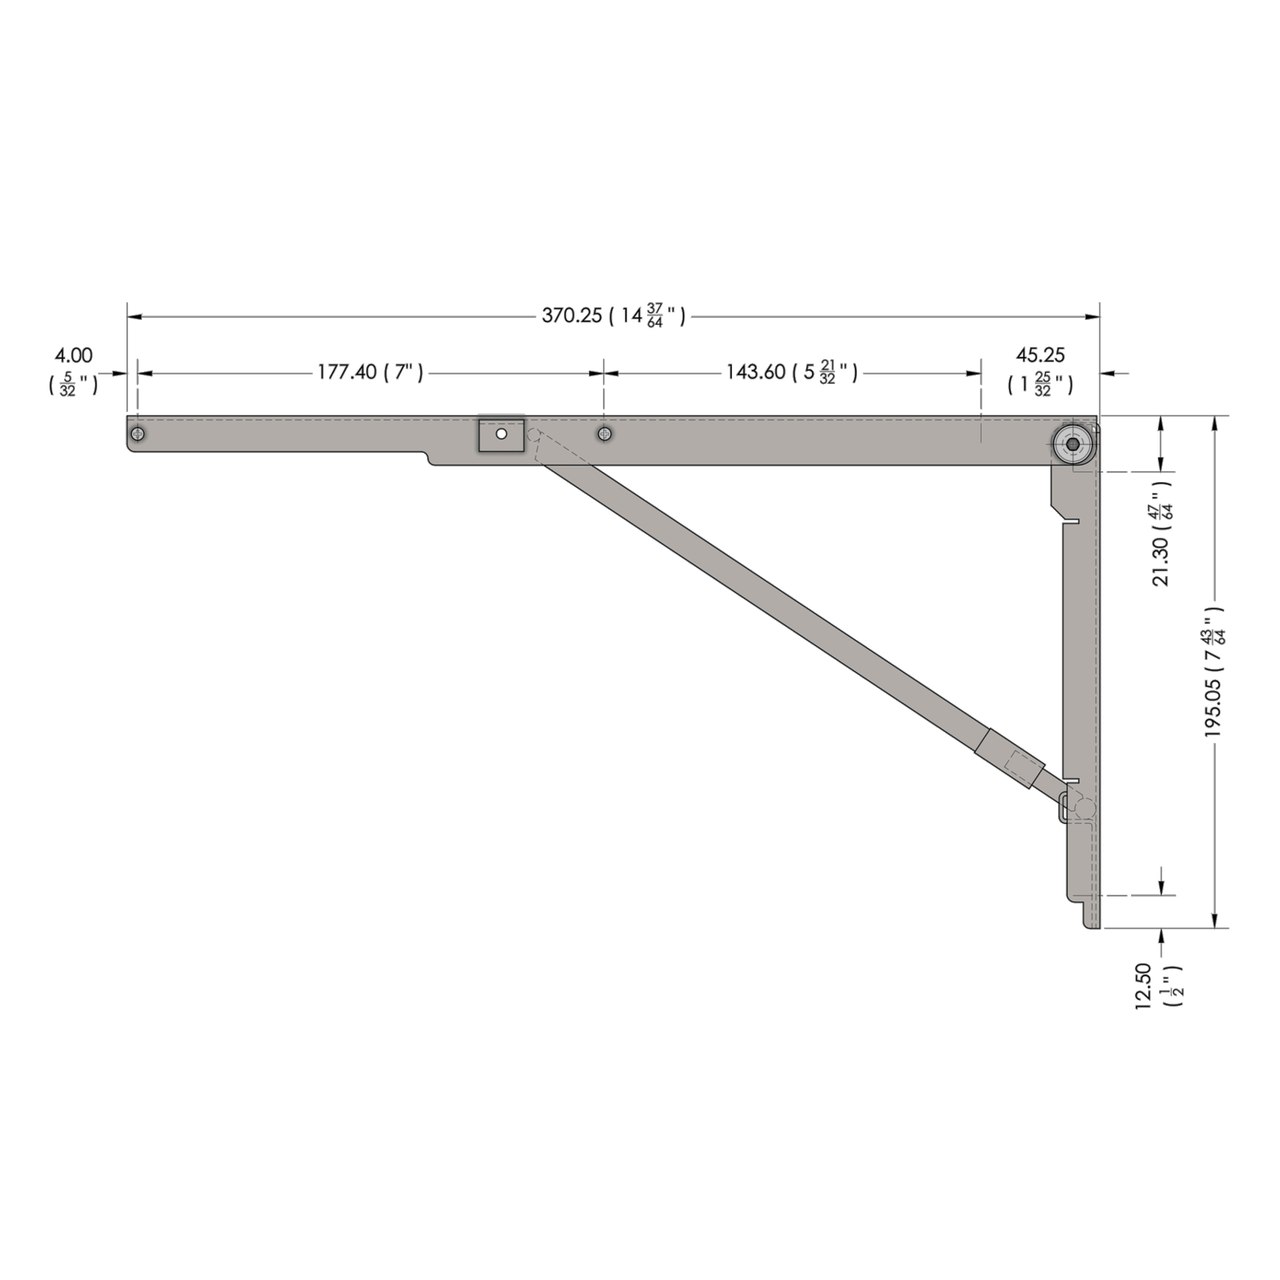 Side drawing of the stainless steel 14.5 inch wall mounted folding brackets with dimensions